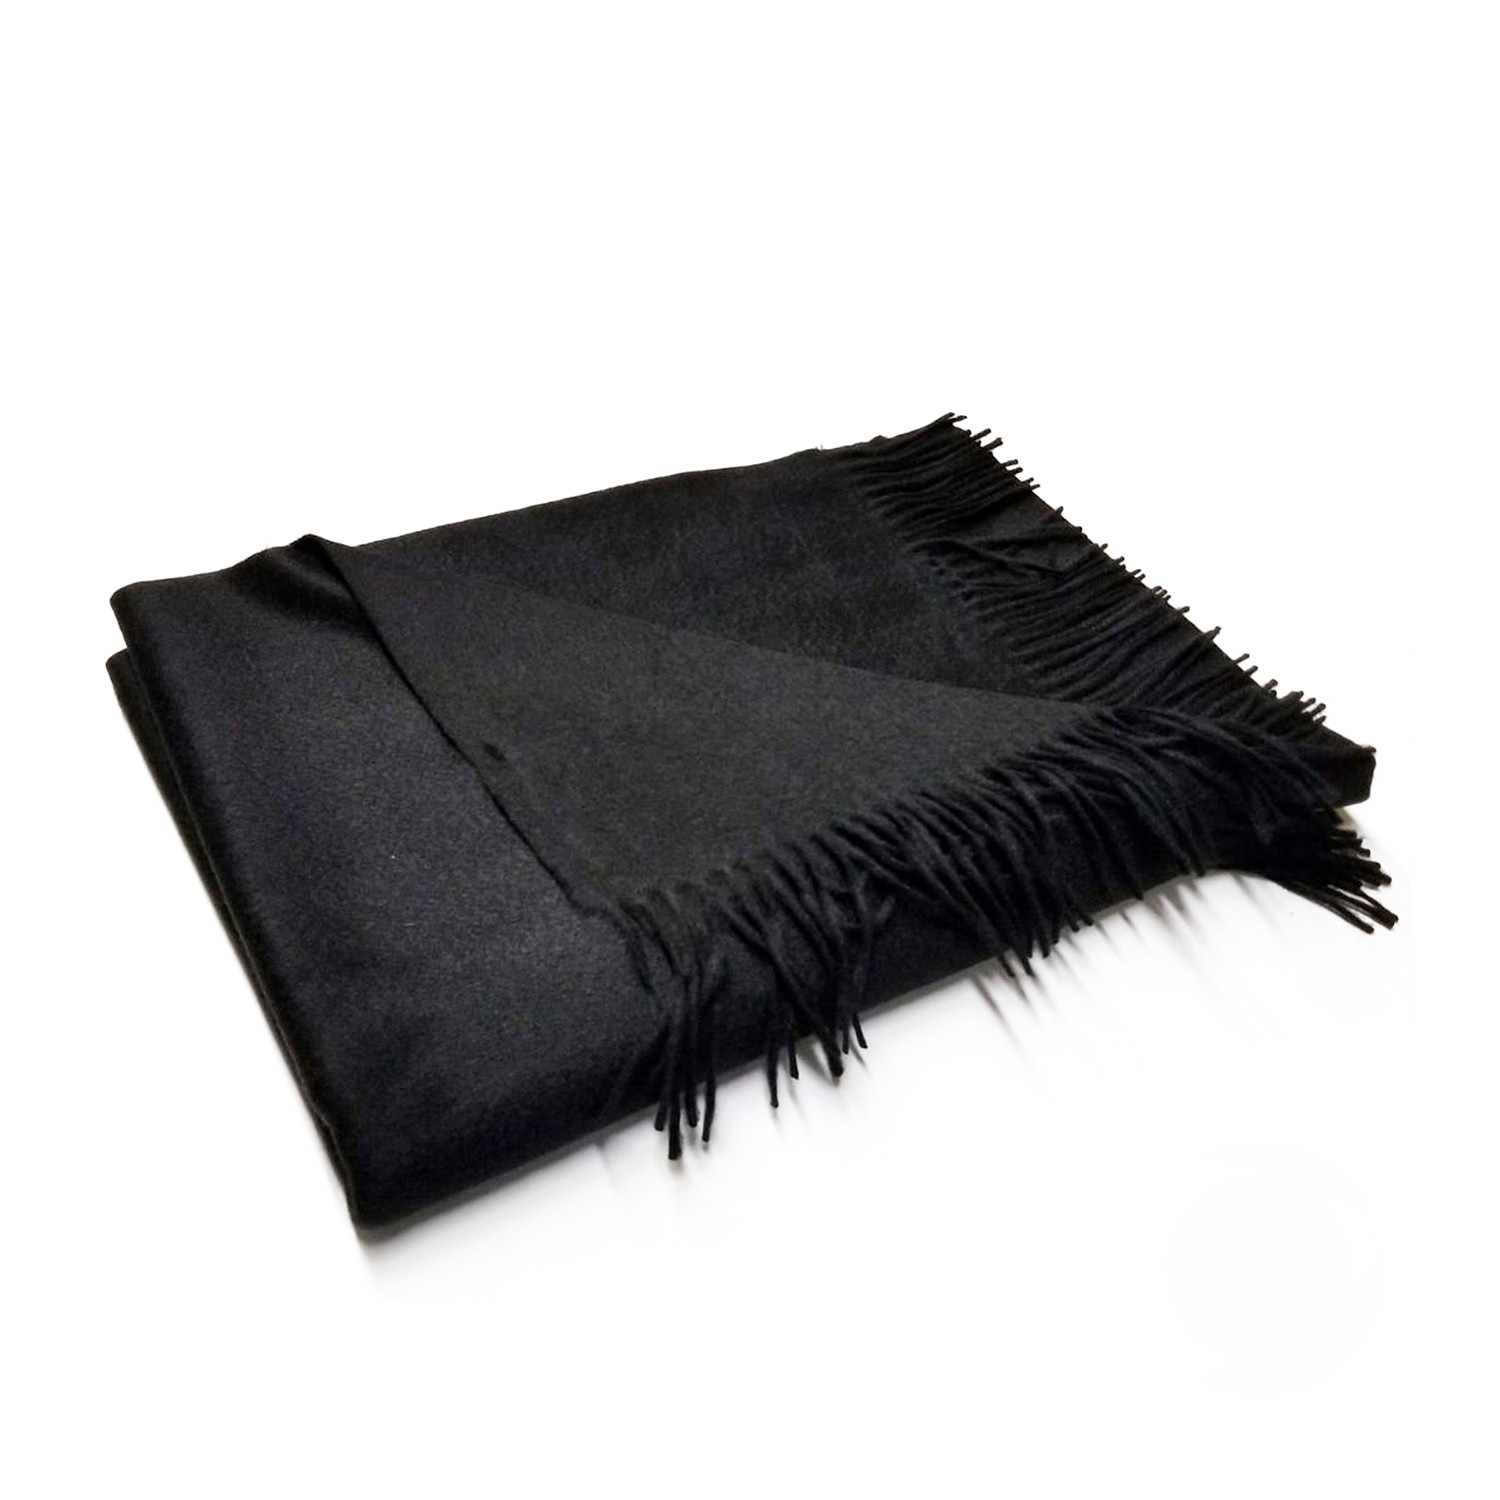 Image of: Woven Cashmere Throw Fringes White Portolano Products Touch Of Modern